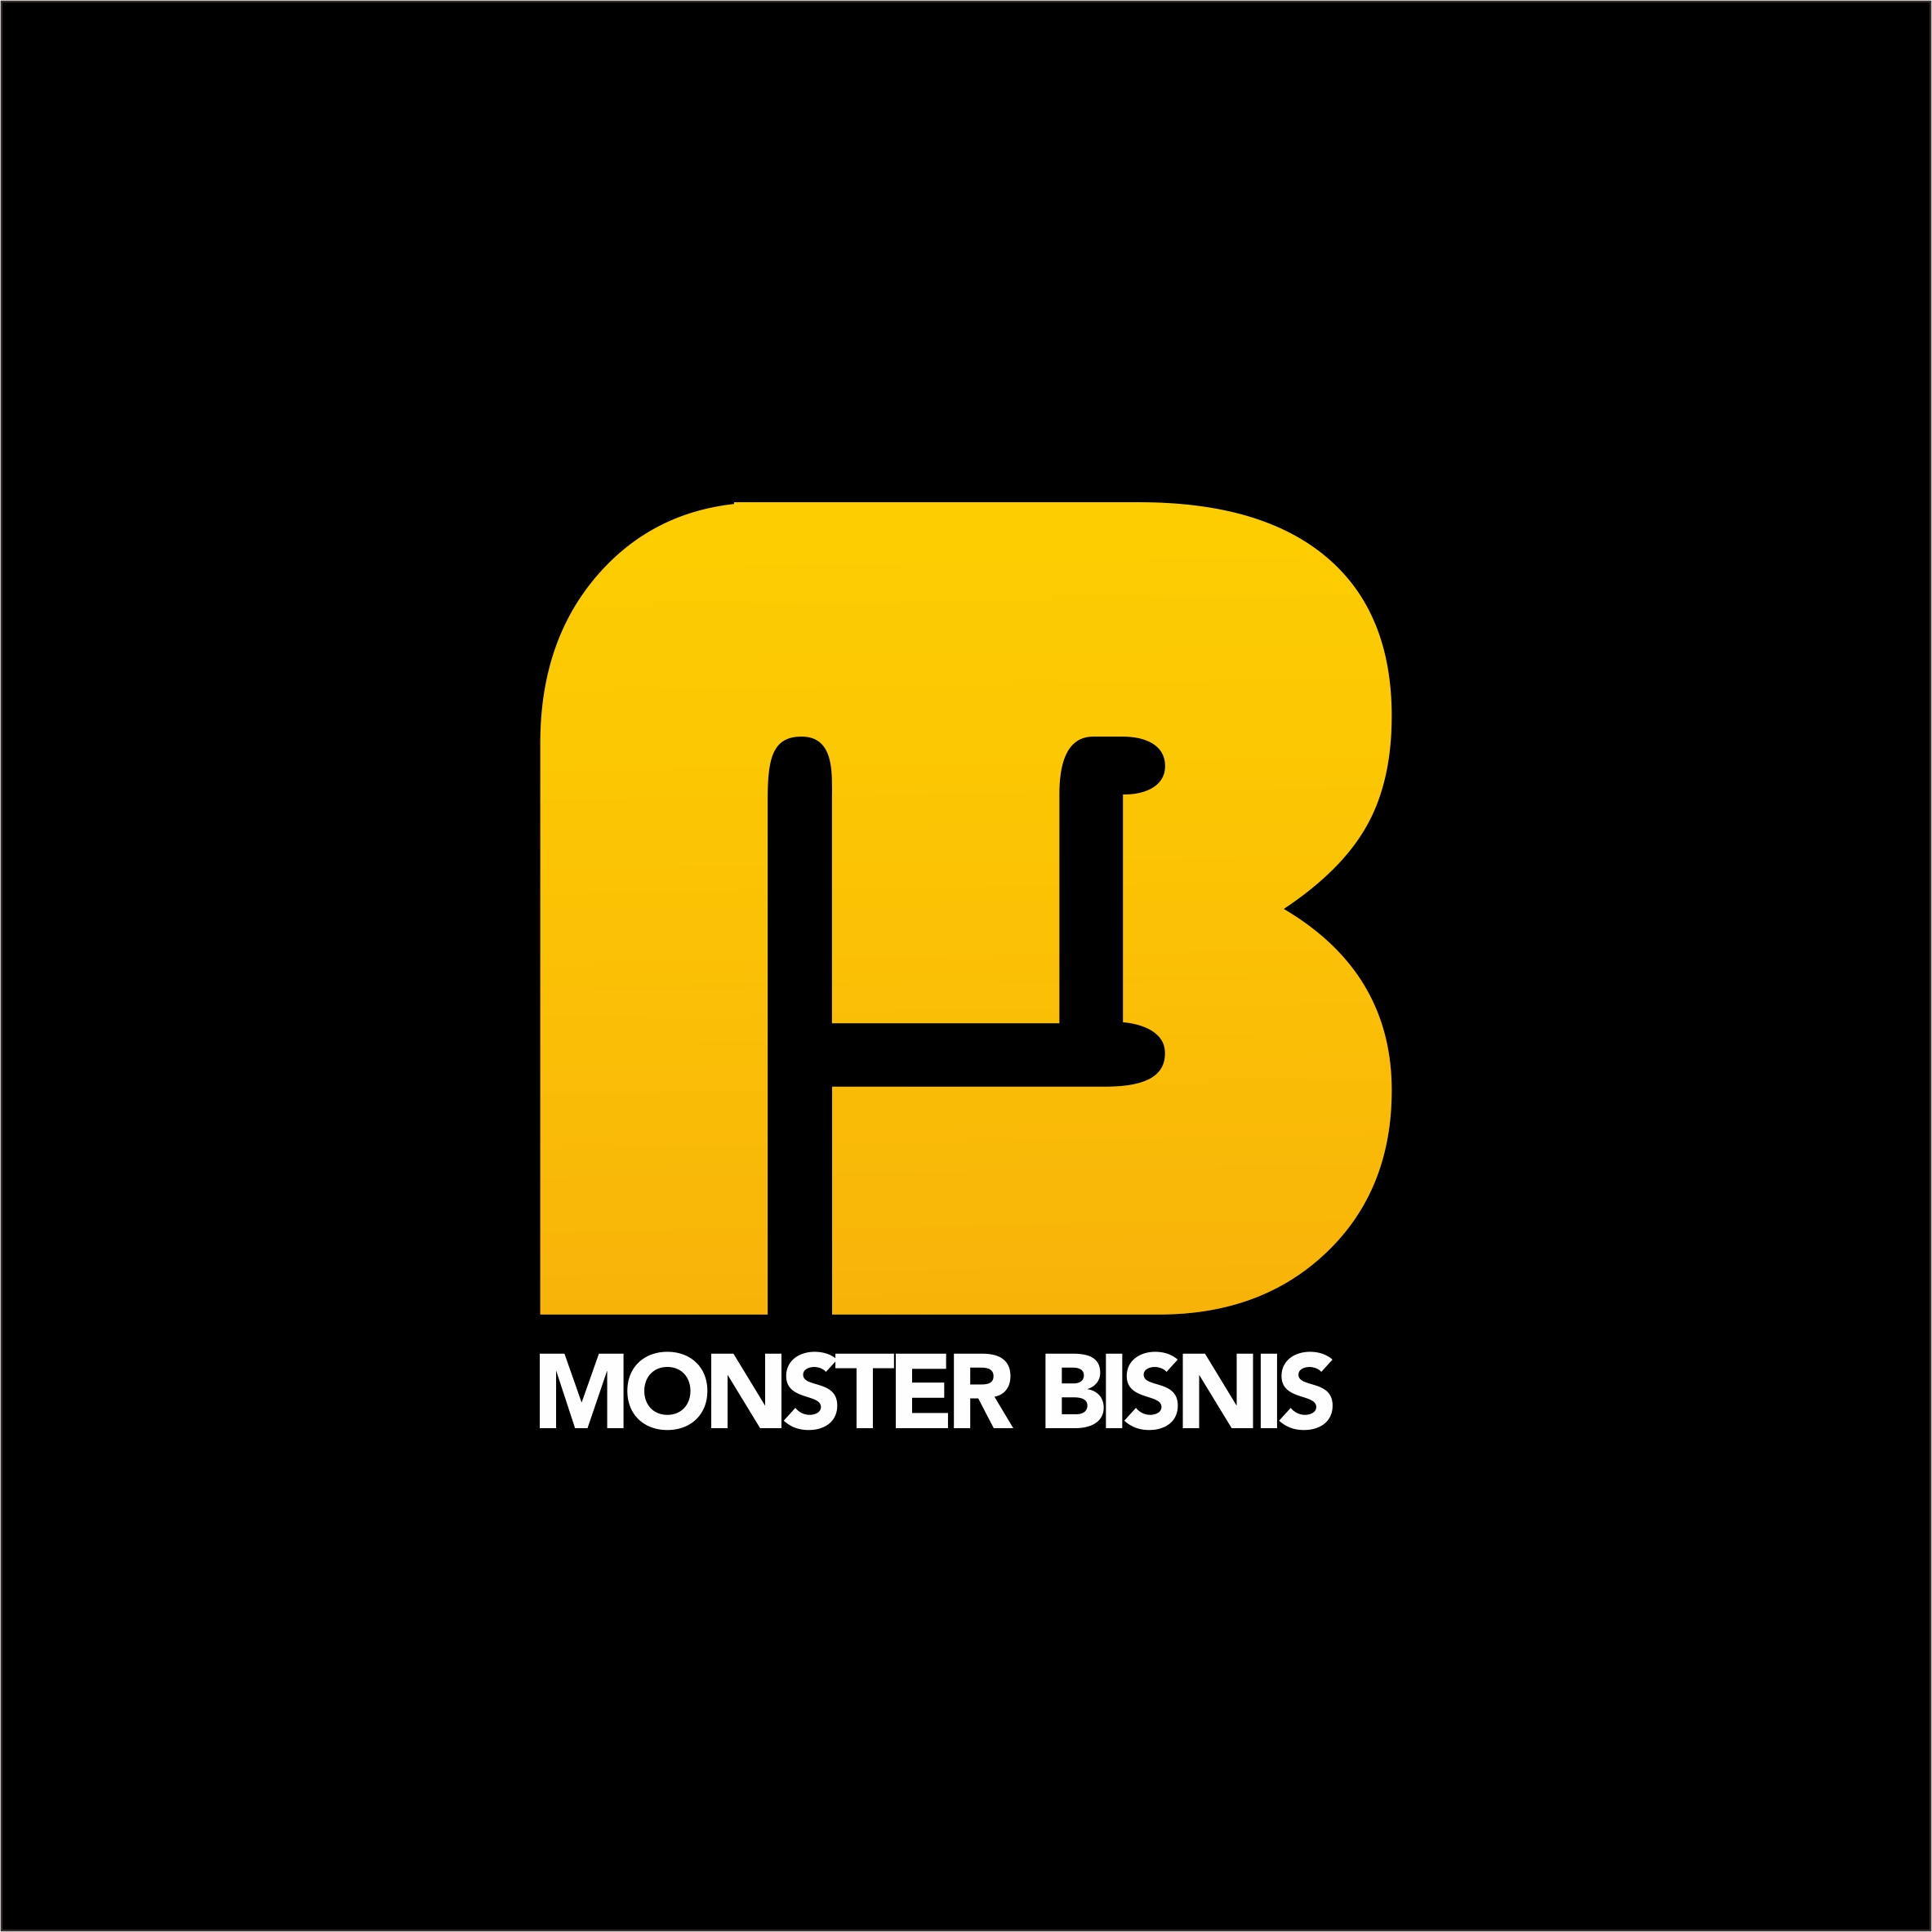 MonsterBisnis.com